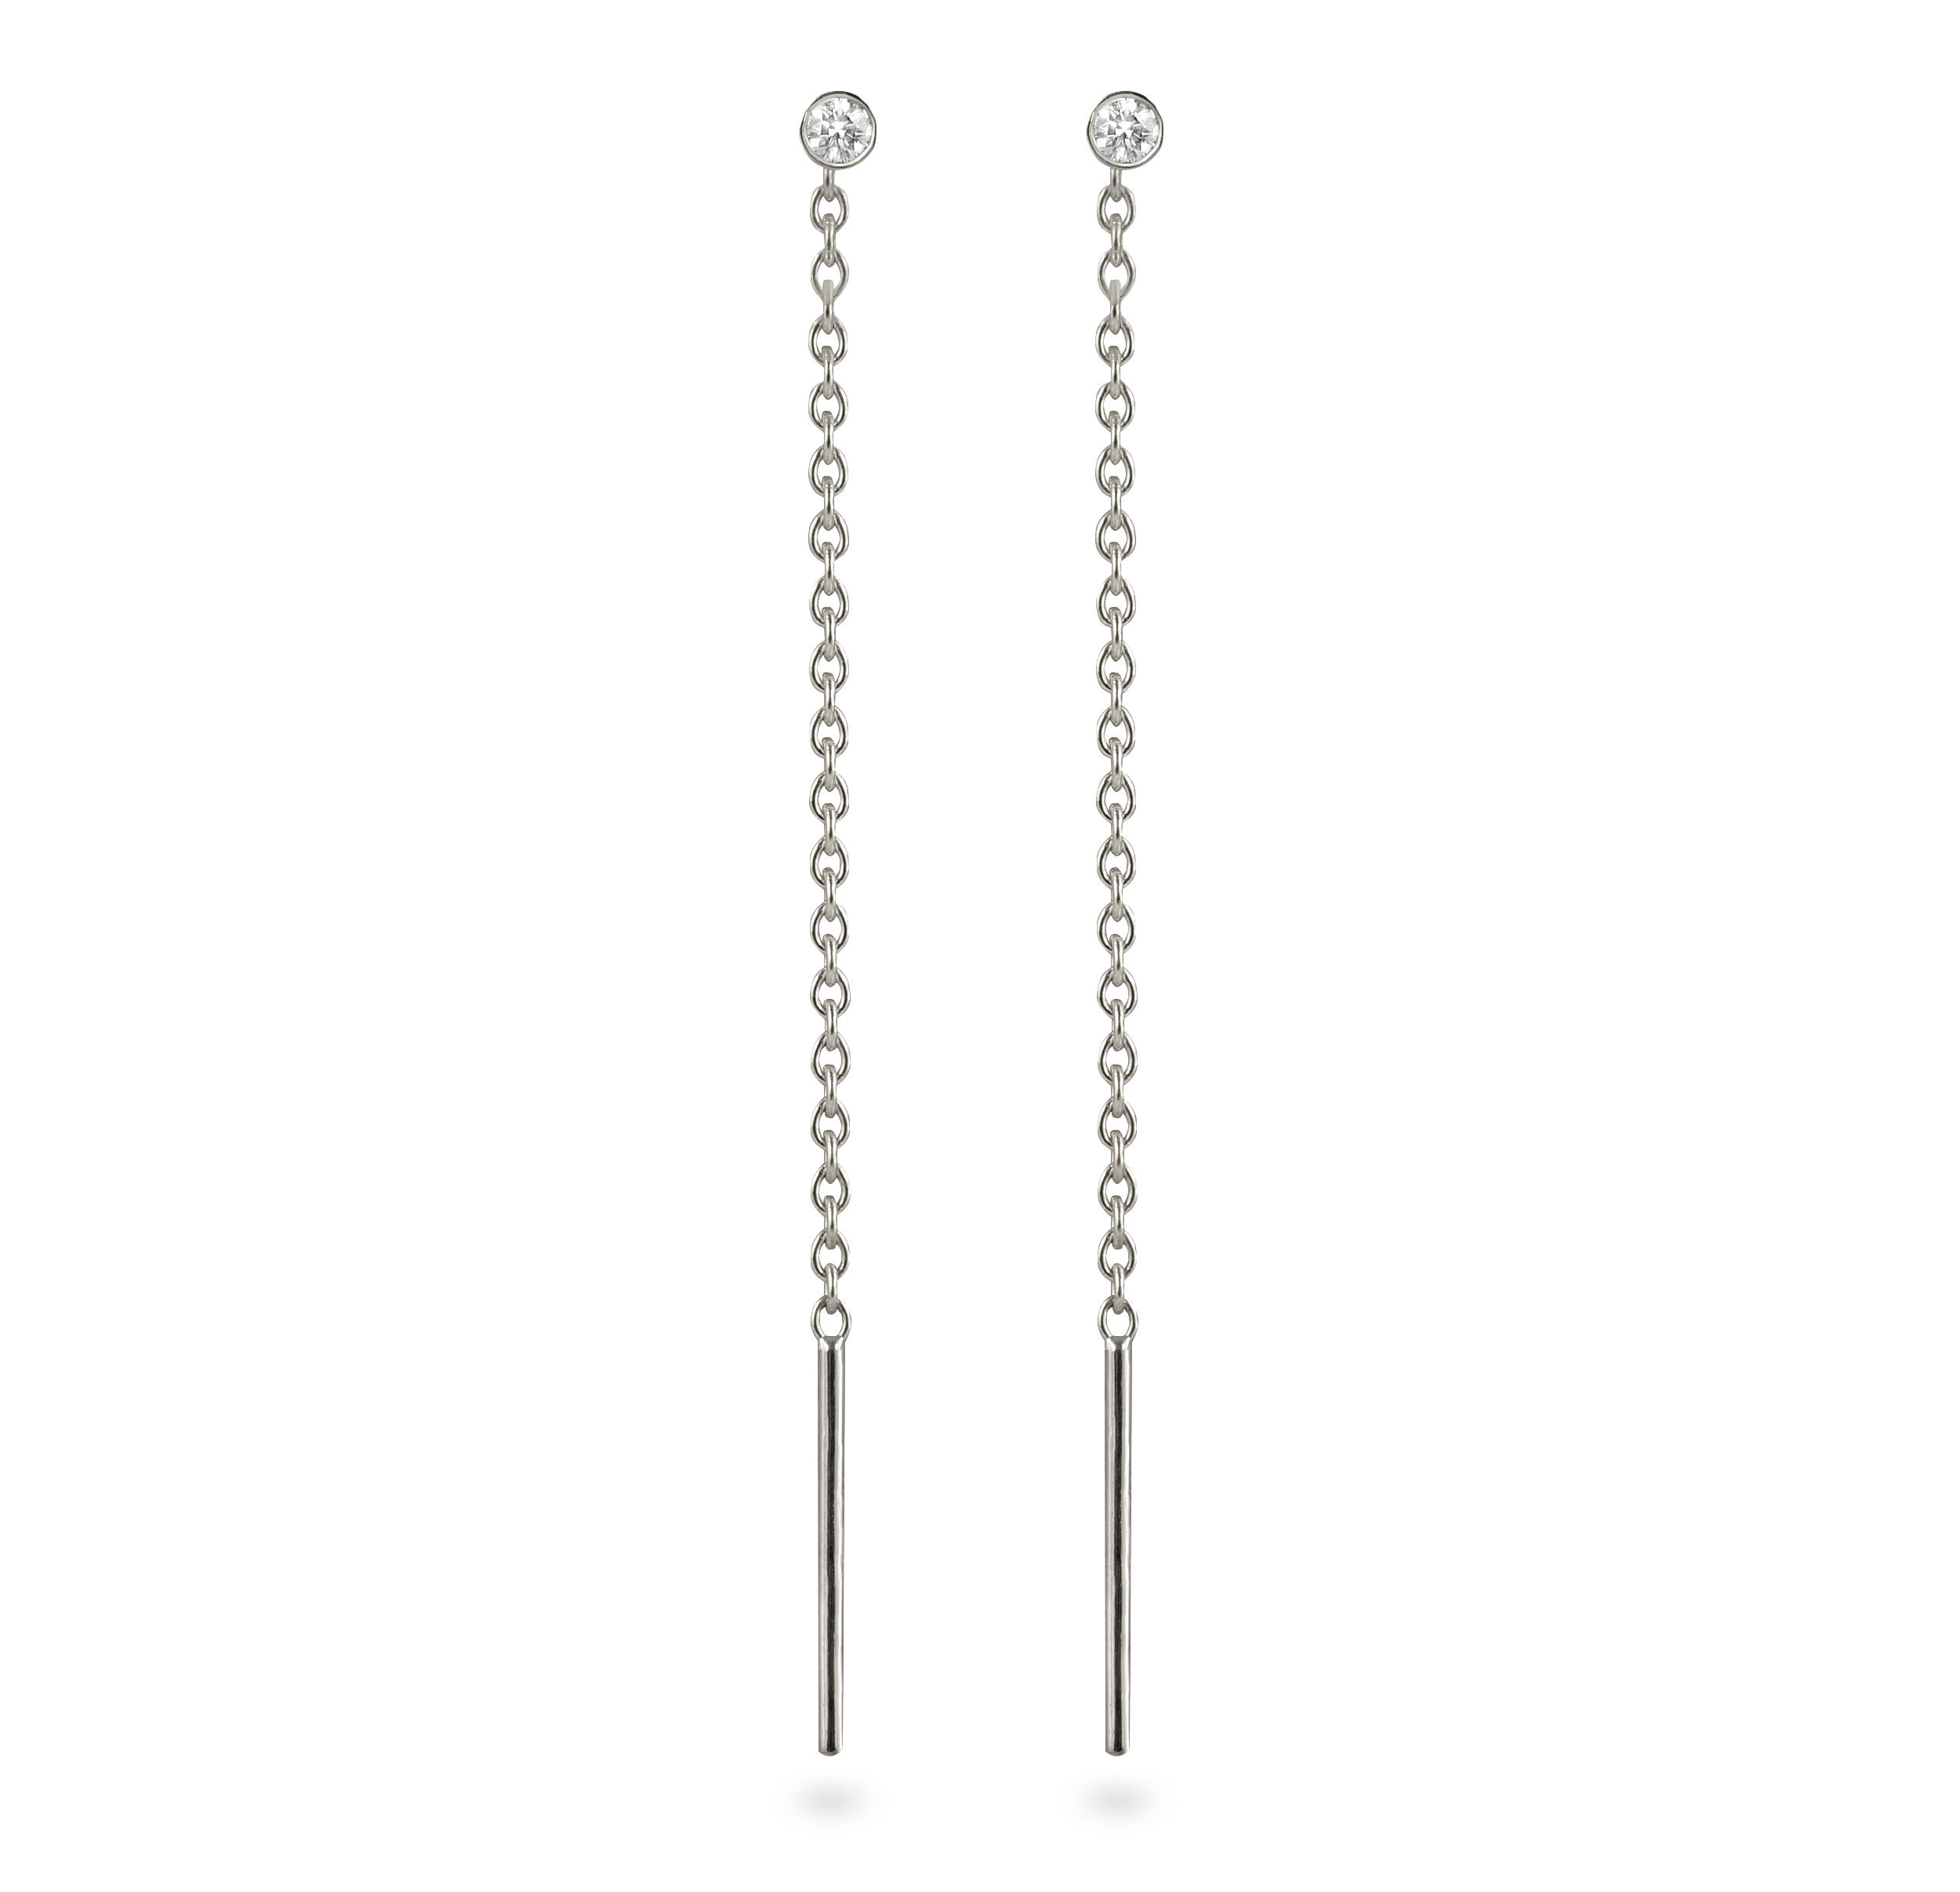 white-gold–thread-earrings-threader-earrings-thread-the-metal-through-your-ear-so-that-it-falls-down-the-back-of-your-lobe-lena-cohen-fine-jewellery